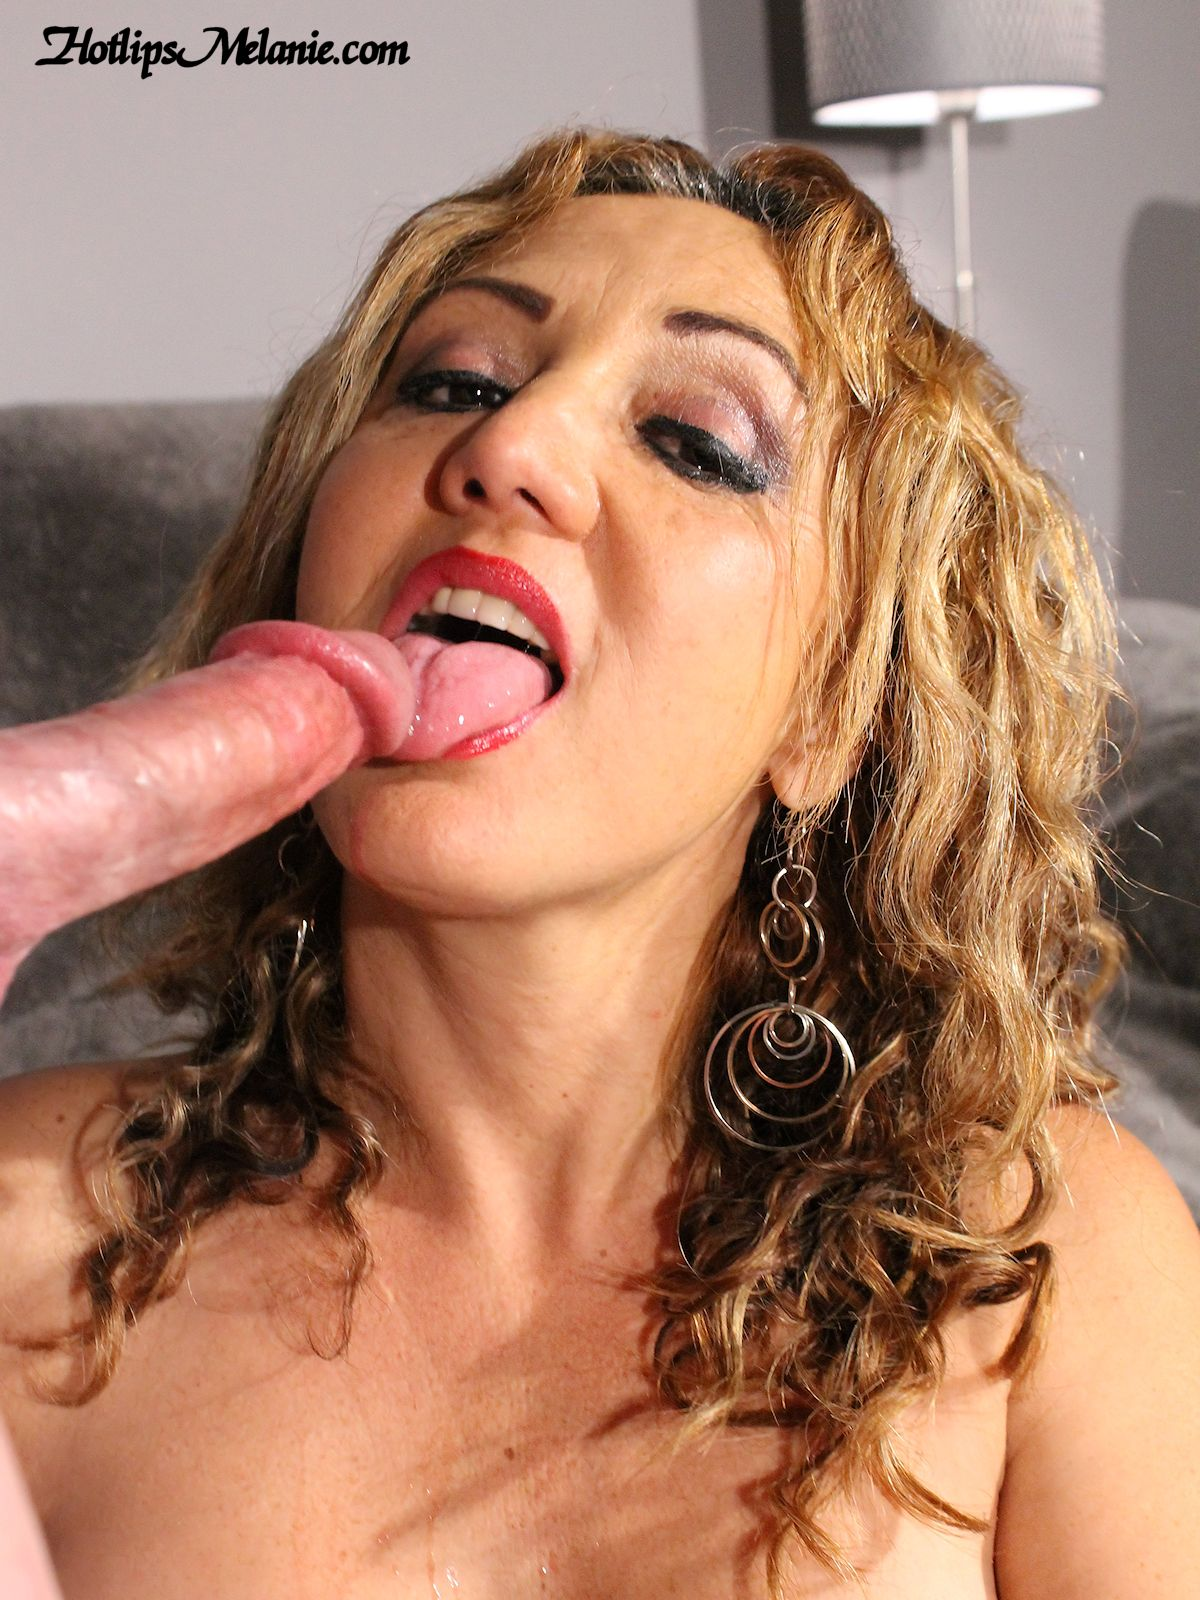 MOM Mature women that love sucking cock